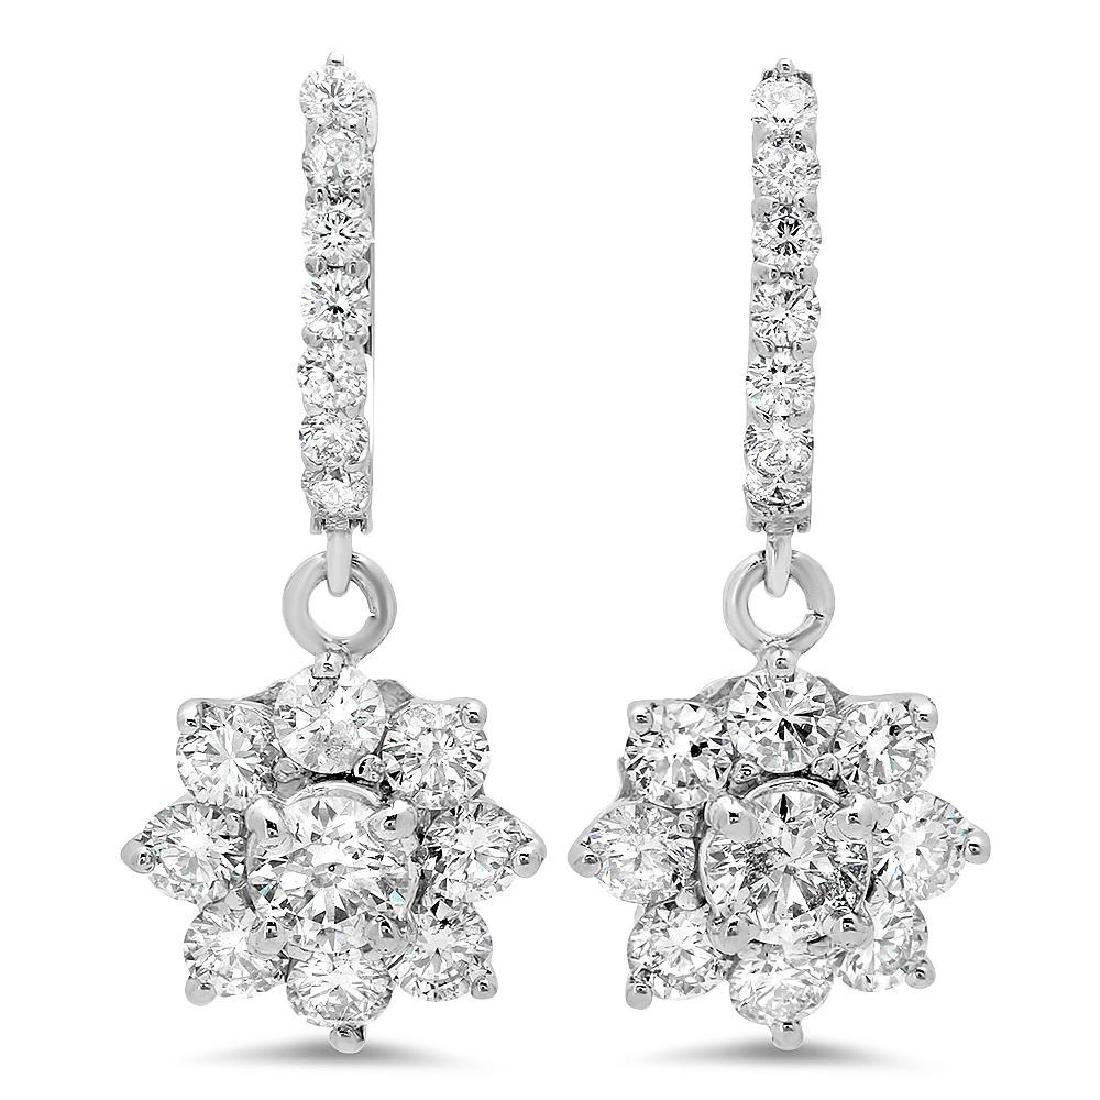 14K Gold 3.41cts Diamond Earrings